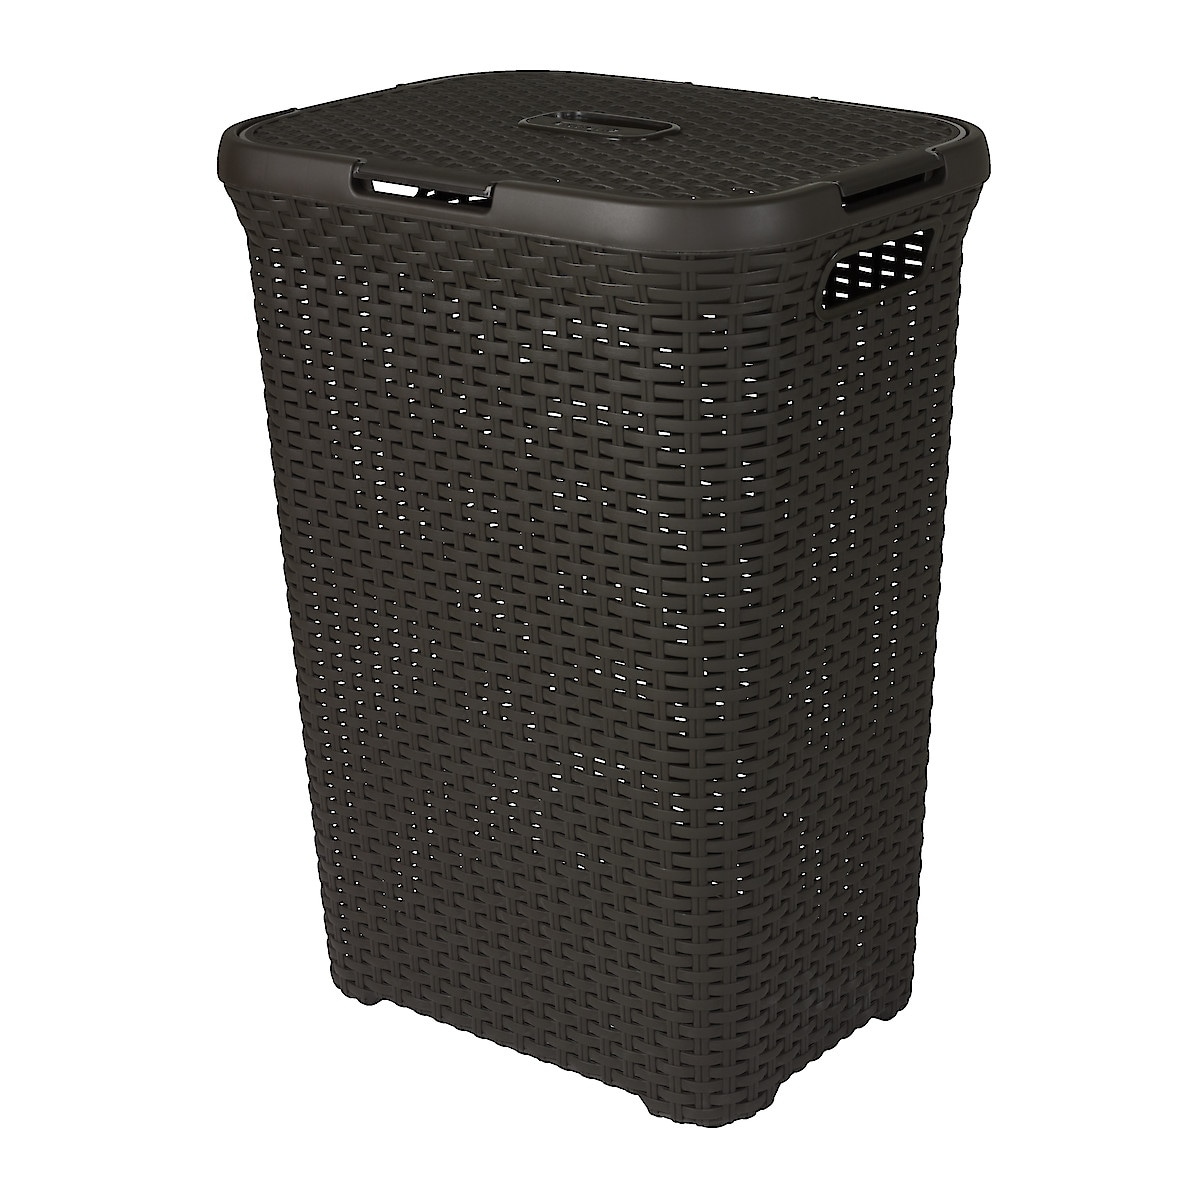 Curver Laundry Basket